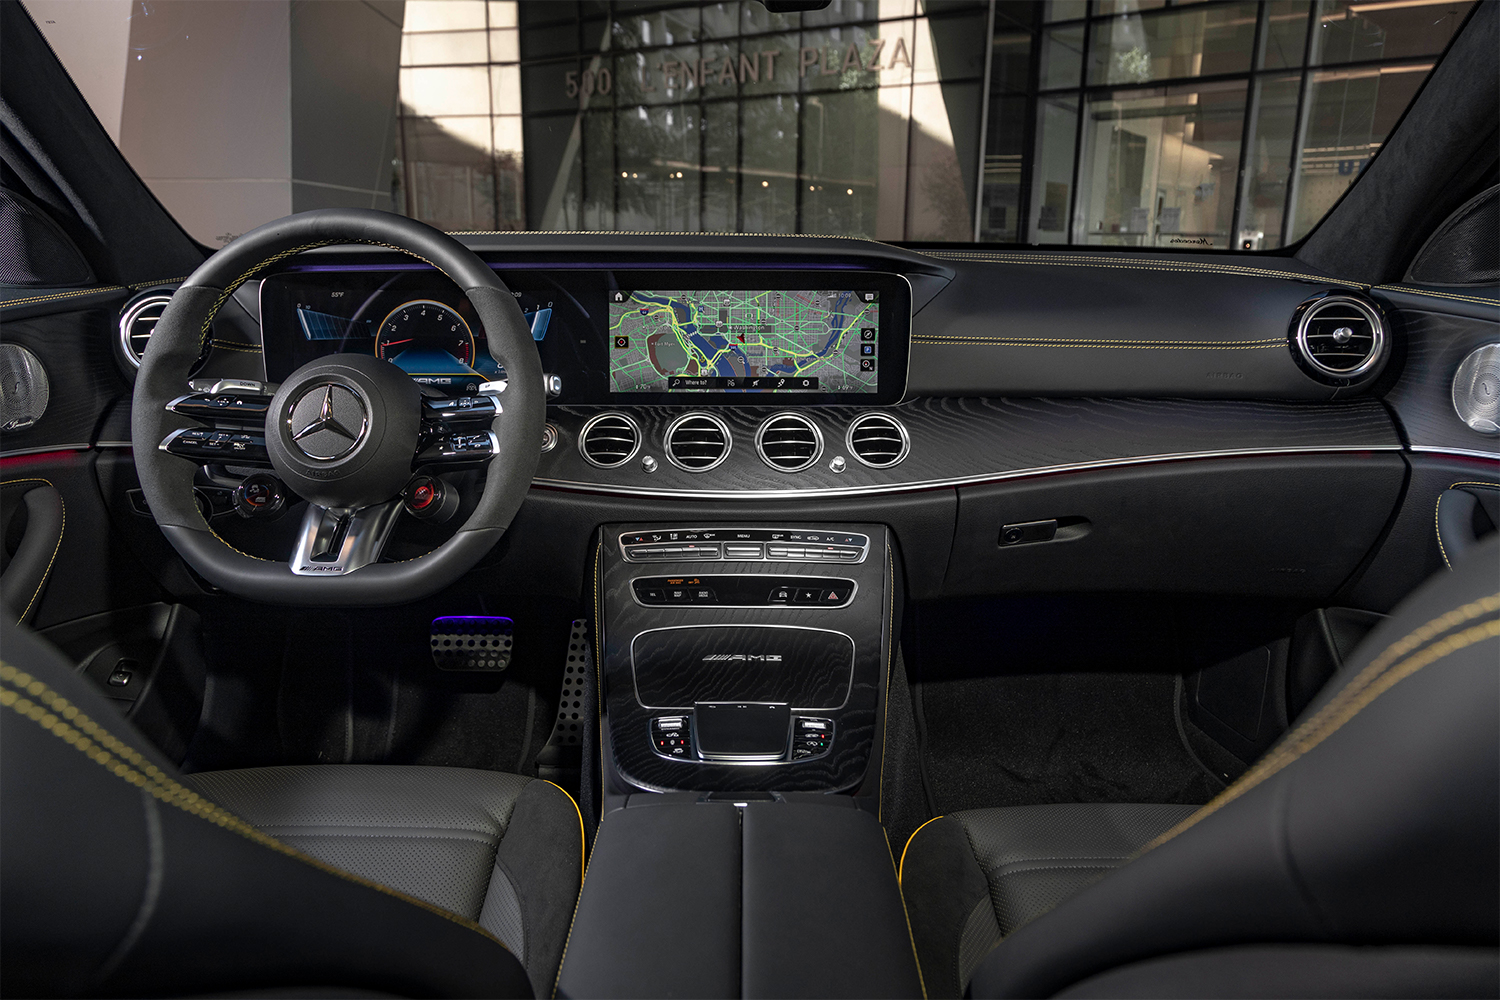 The dash inside the new 2021 Mercedes-AMG E63 S 4MATIC Station Wagon. A little overkill, but still a great driving experience.